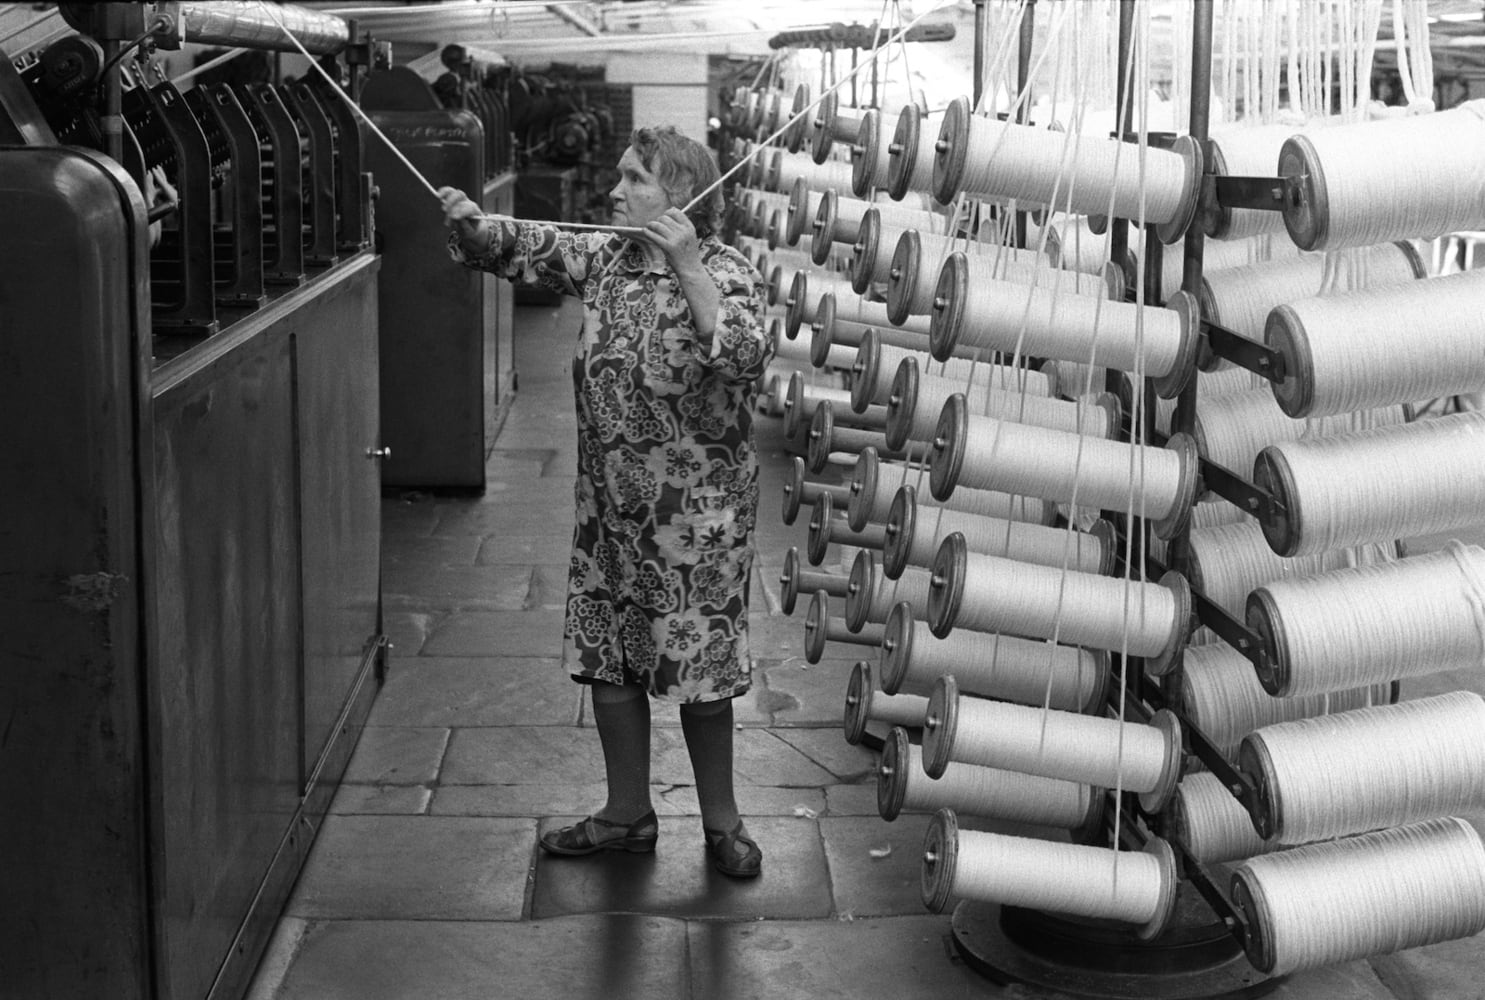 Homer Sykes, Factory work, woman working in Salts Mill Saltaire Yorkshire, 1981